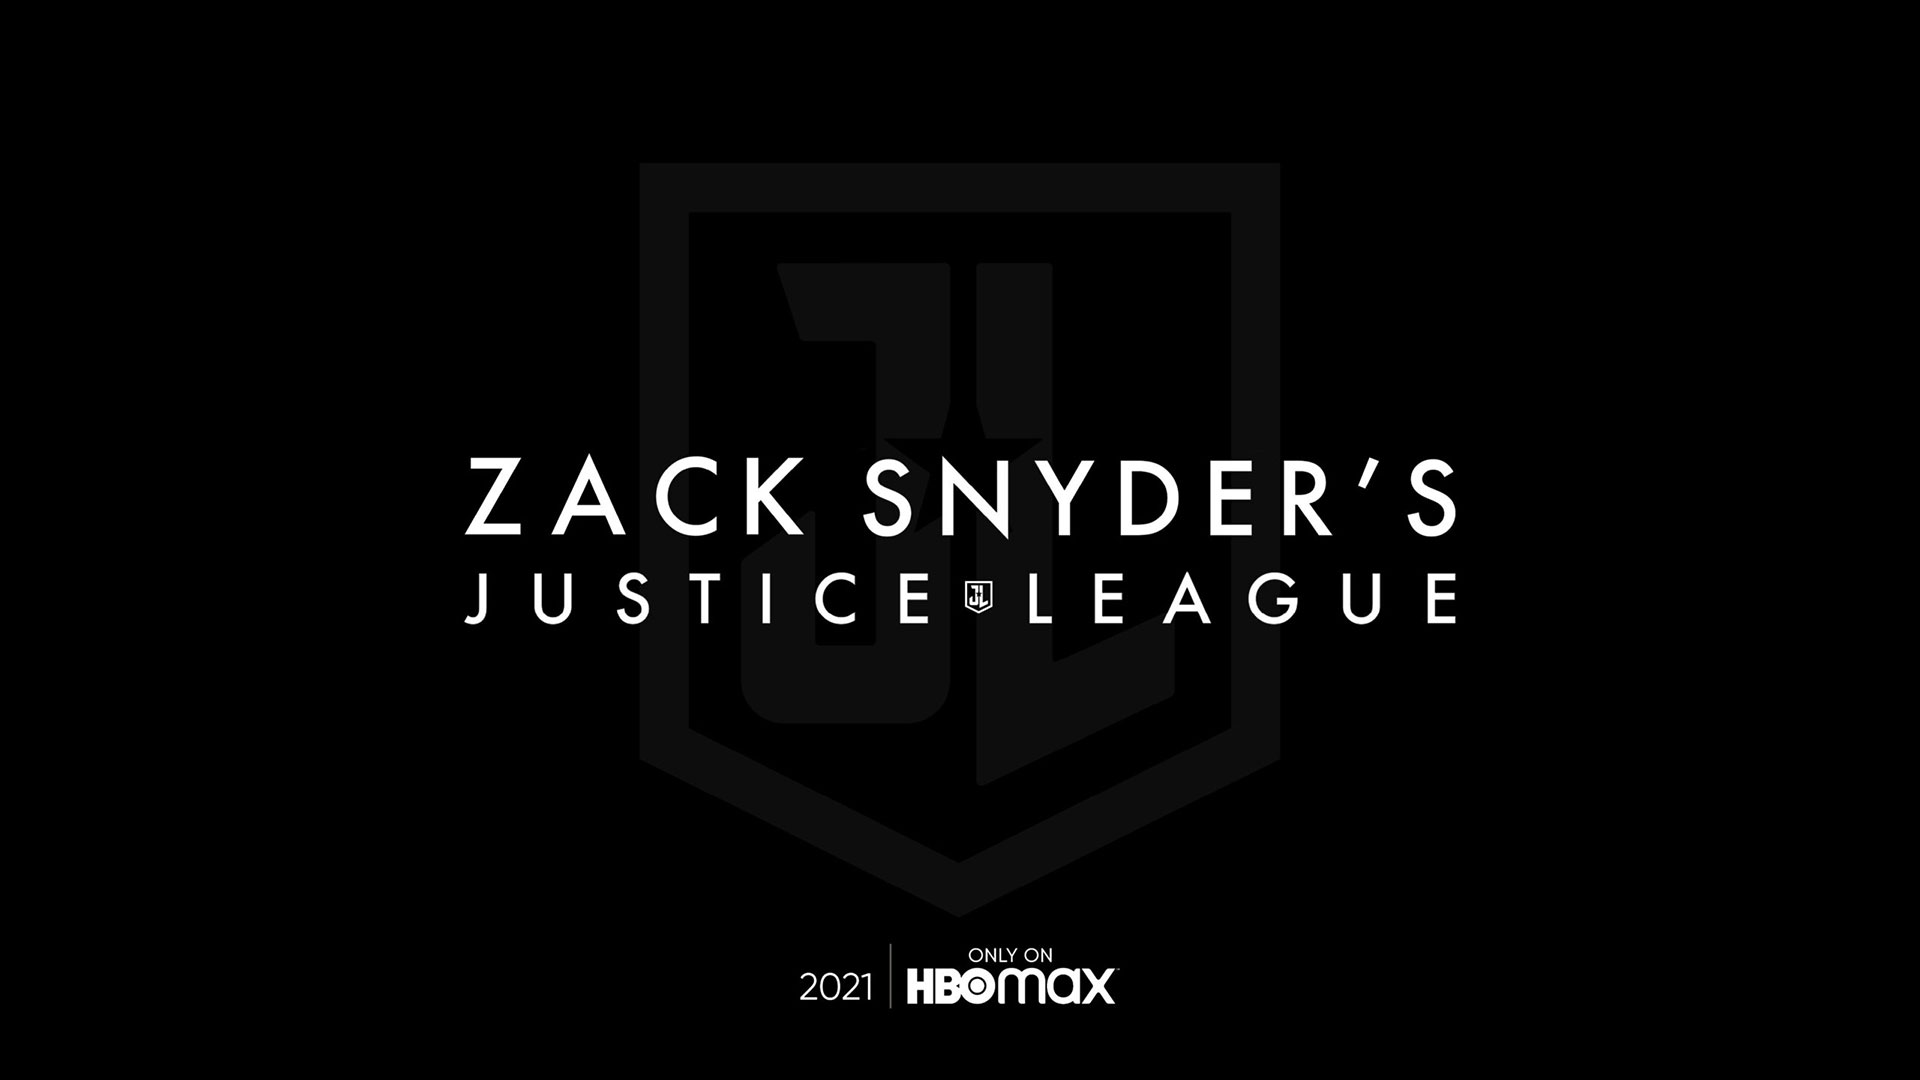 HD wallpaper Zack Snyder's Justice League review